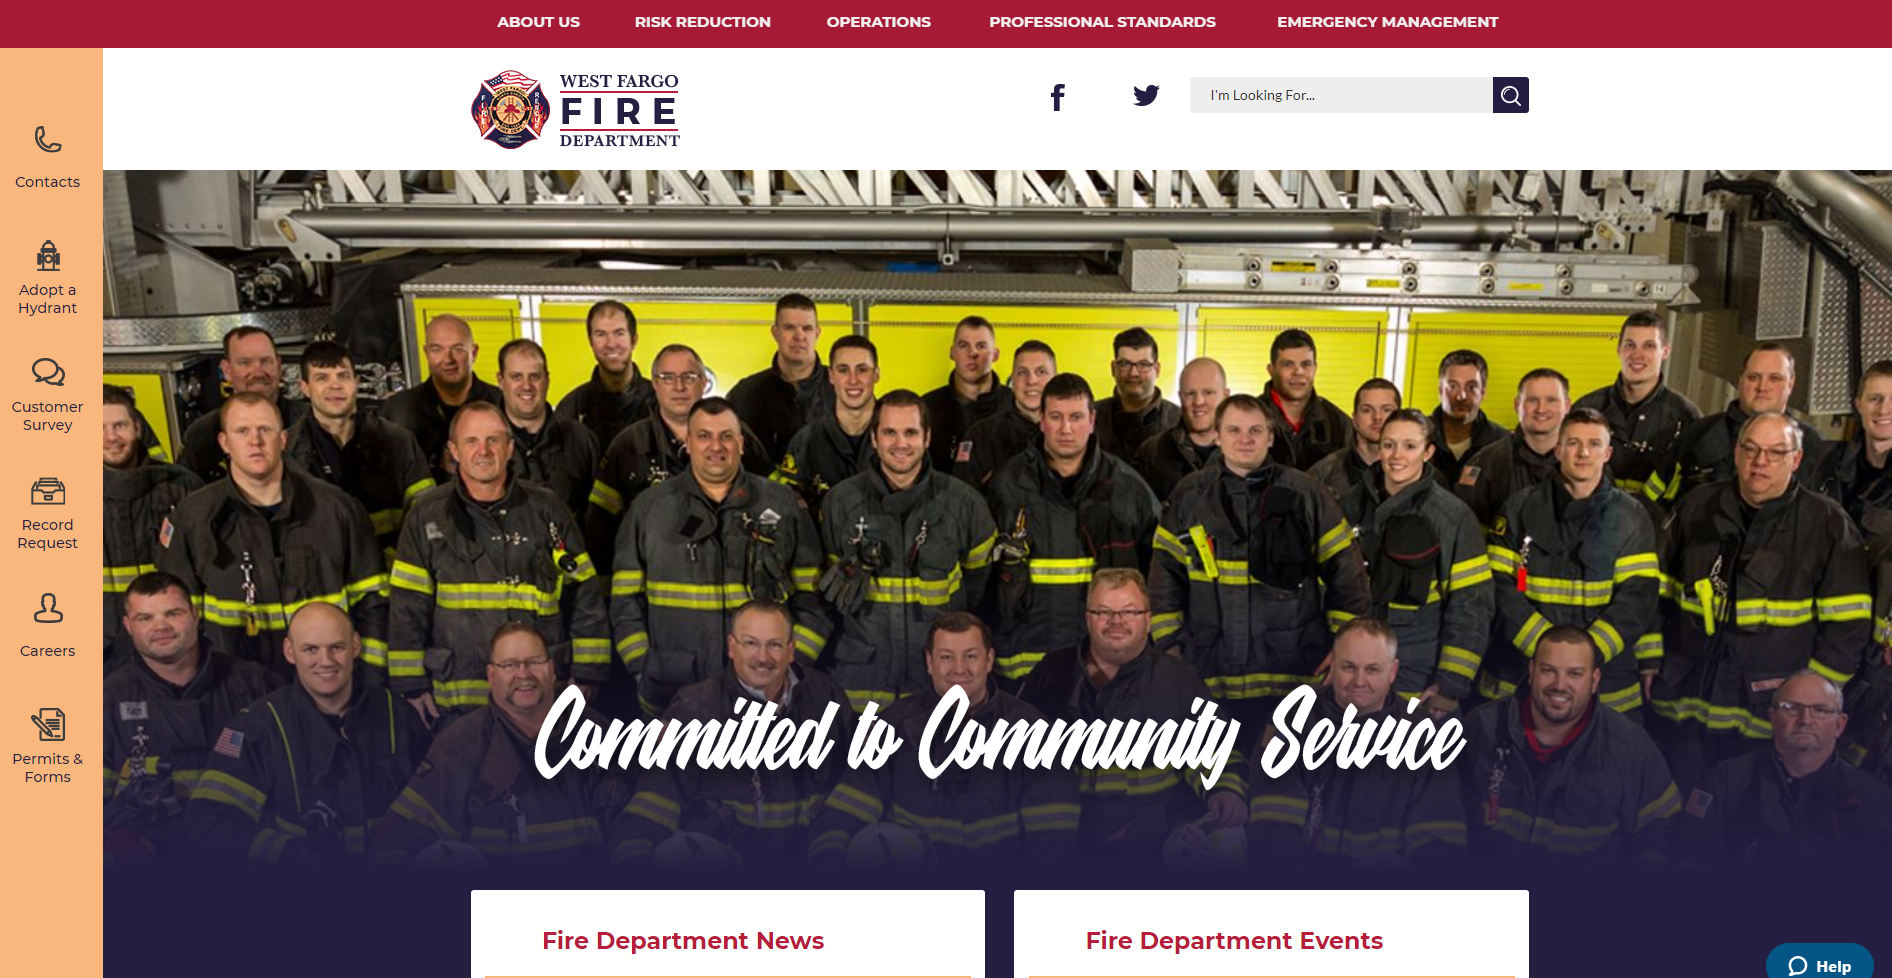 New home page of the West Fargo Fire Department